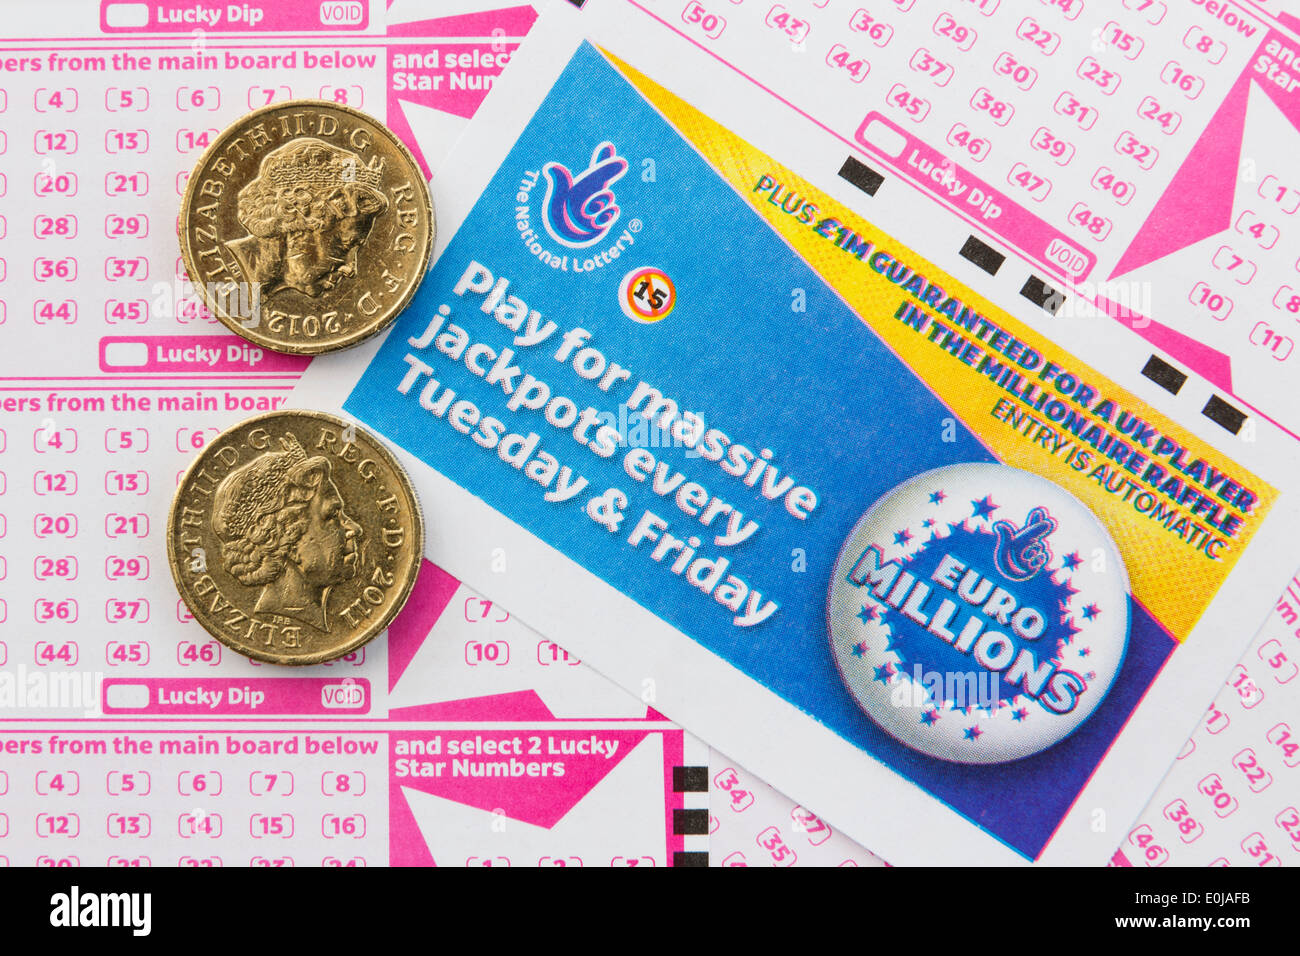 UK National Lottery Euro Millions payslips with number boards for selecting numbers and two £1 coins from above. England Britain - Stock Image